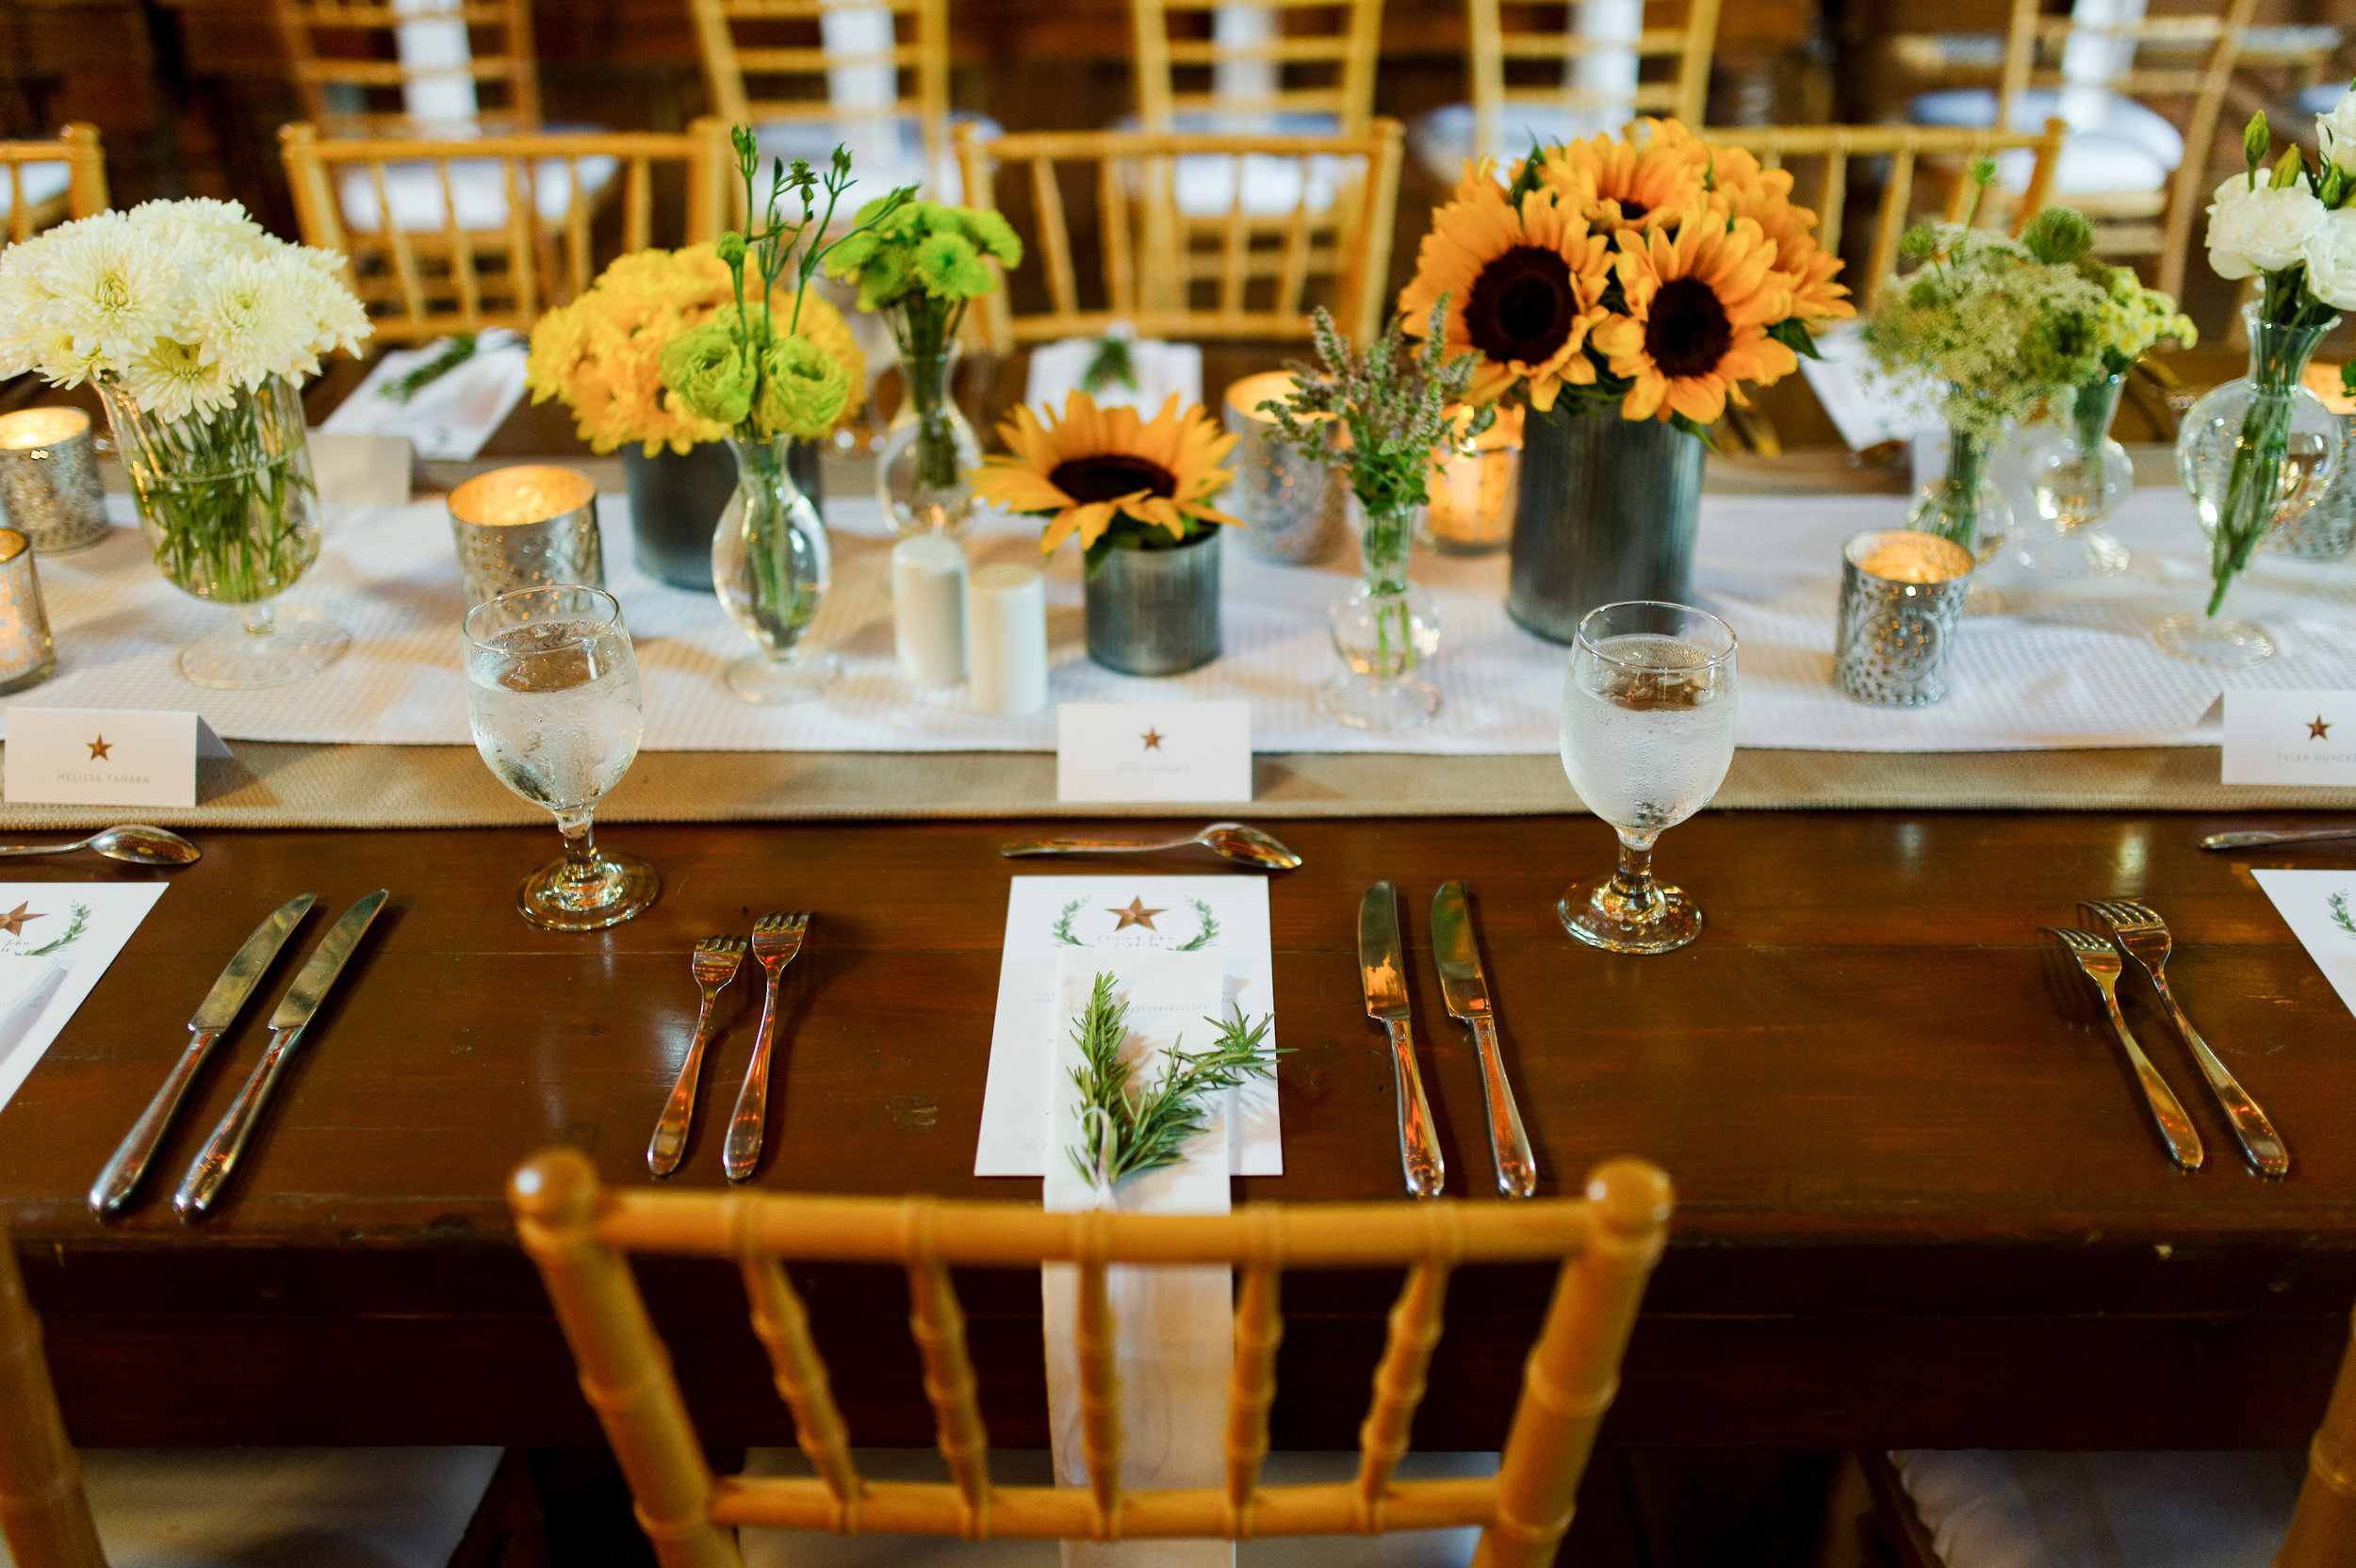 Picture of Table Setting with sunflowers